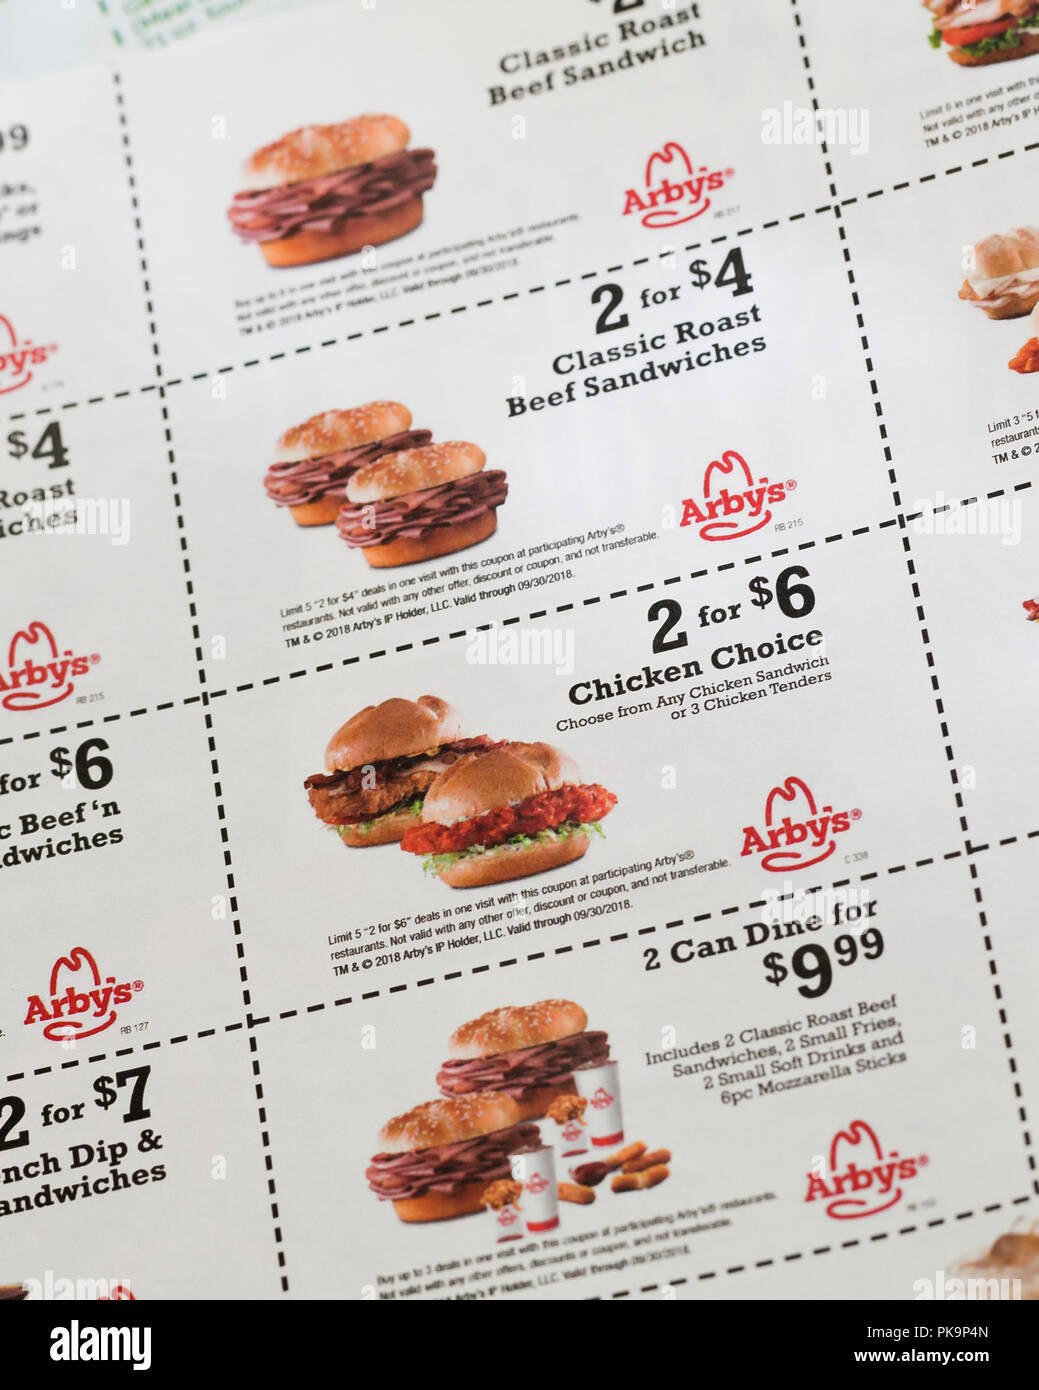 Arbys Sandwich Coupons Fast Food Coupon Usa Stock Photo